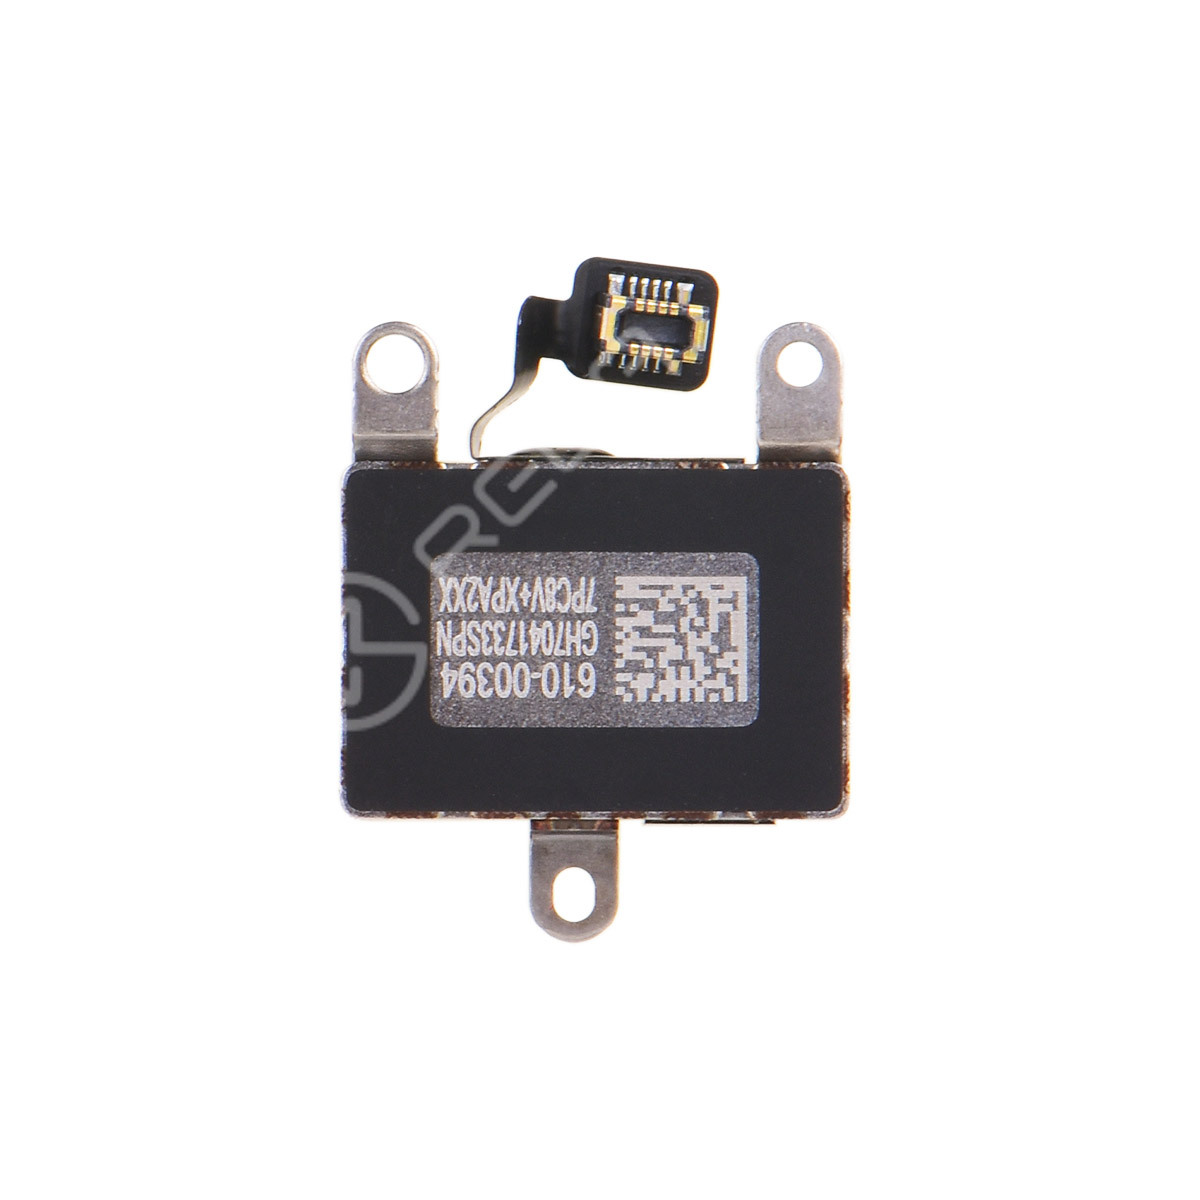 For Apple iPhone 12 MINI Vibrating Motor Replacement